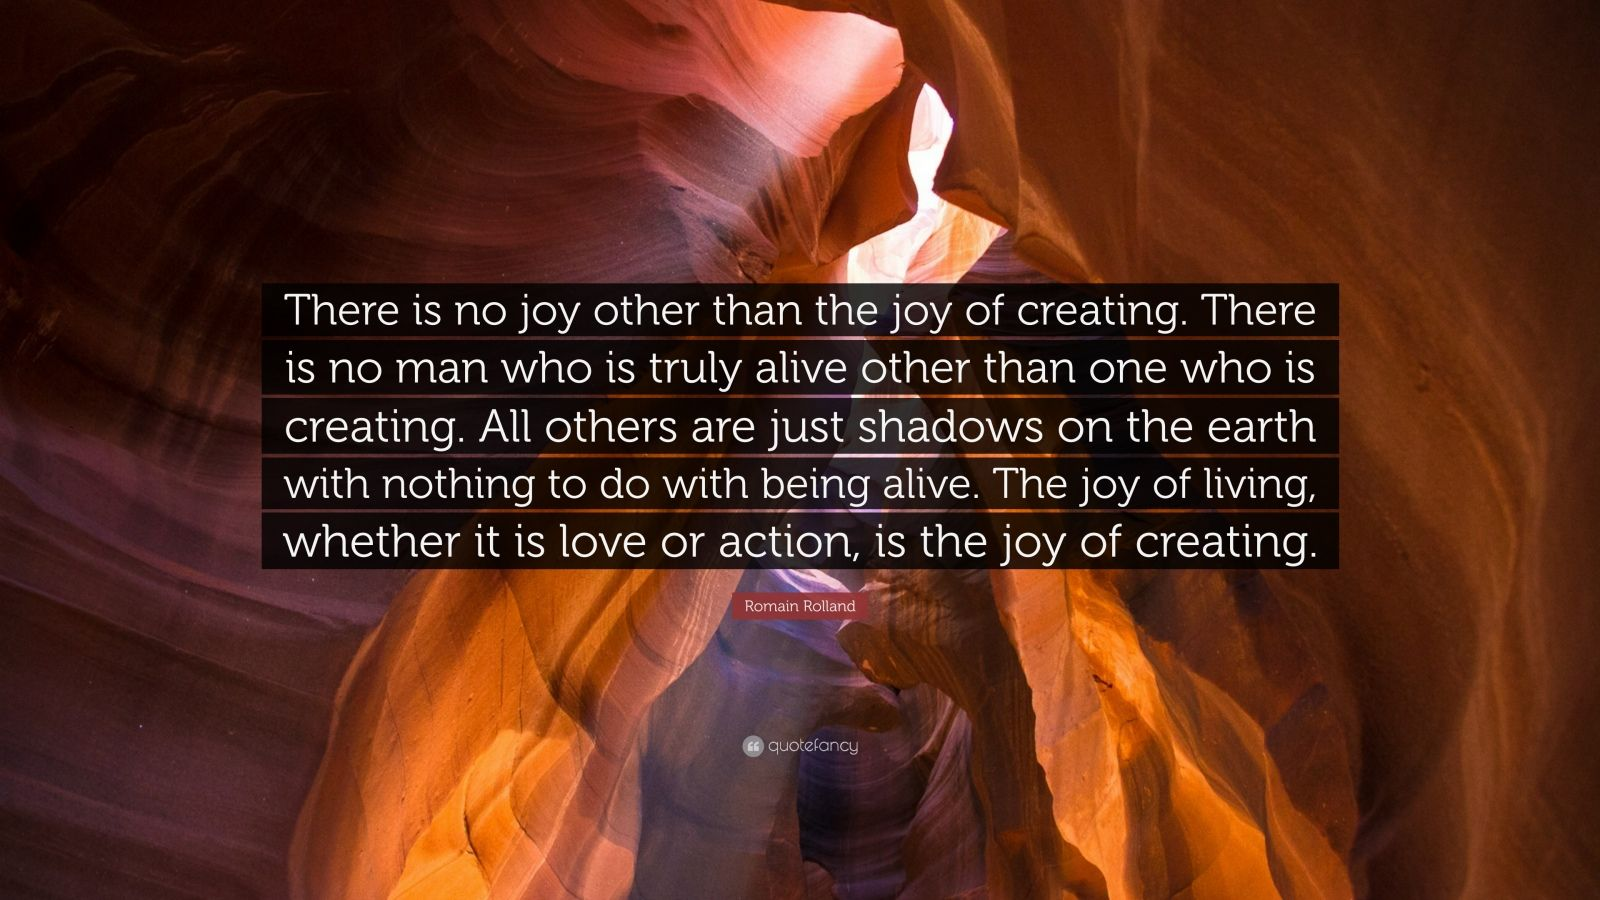 "Romain Rolland Quote: ""There is no joy other than the joy of creating. There is no man who is truly alive other than one who is creating. All others are just shadows on the earth with nothing to do with being alive. The joy of living, whether it is love or action, is the joy of creating."""